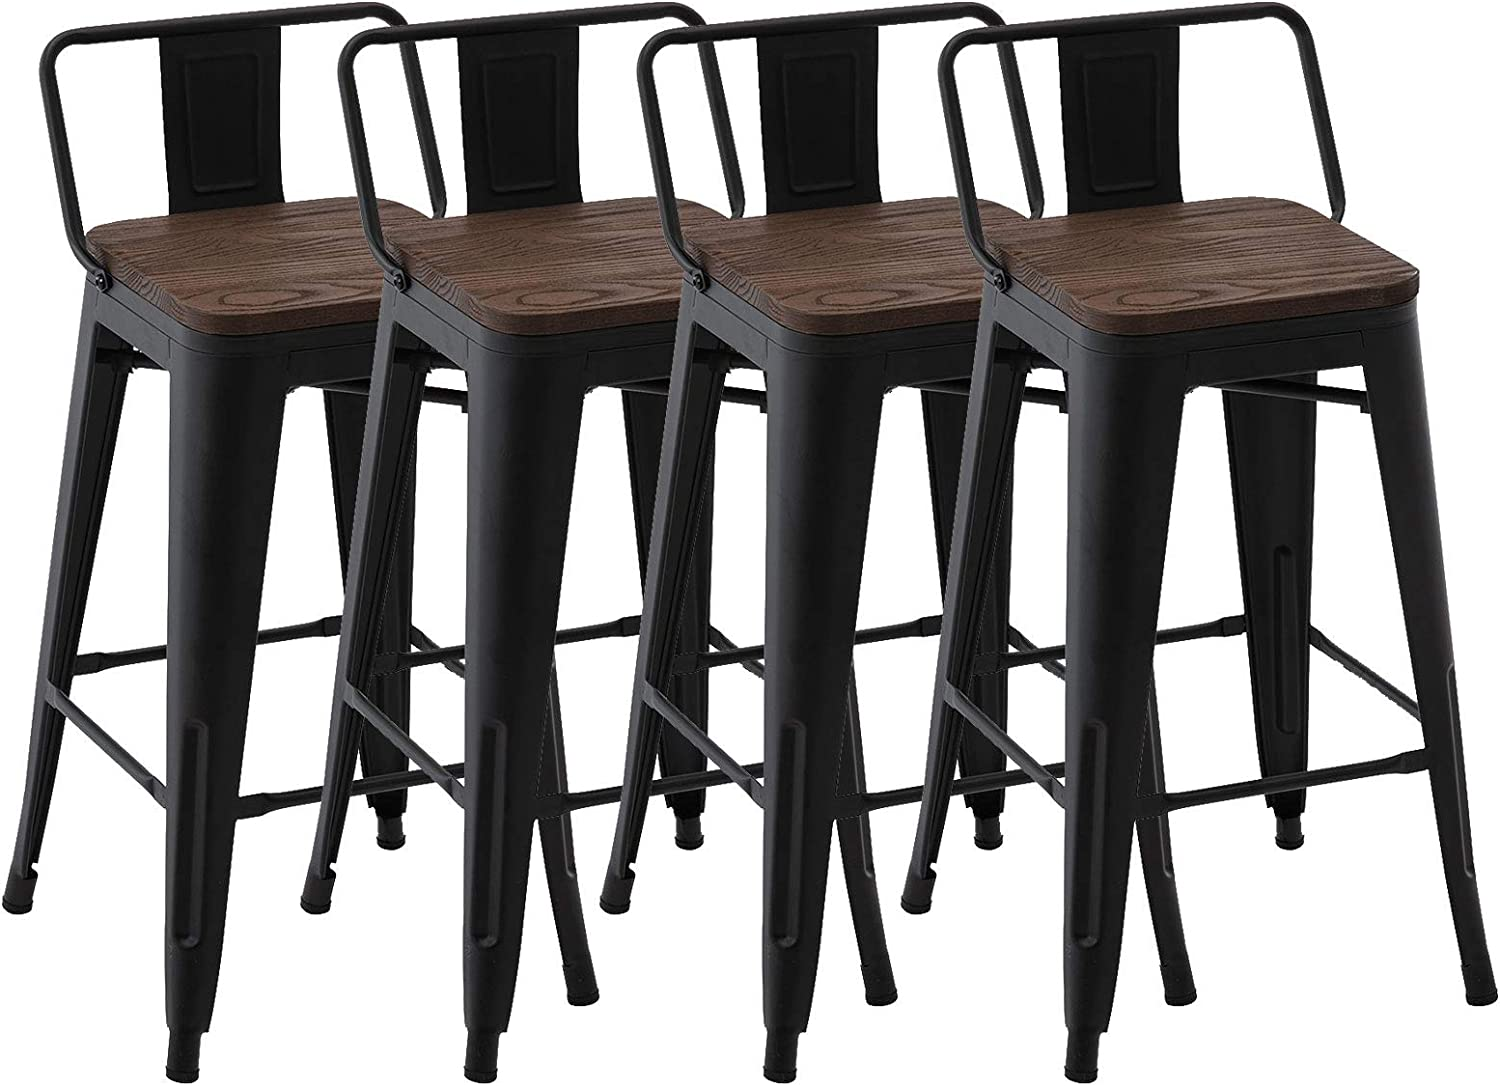 Max 89% OFF zhenghao Industrial 26 Inch Metal Bar Wood Seat 4 Year-end gift Set of Stools